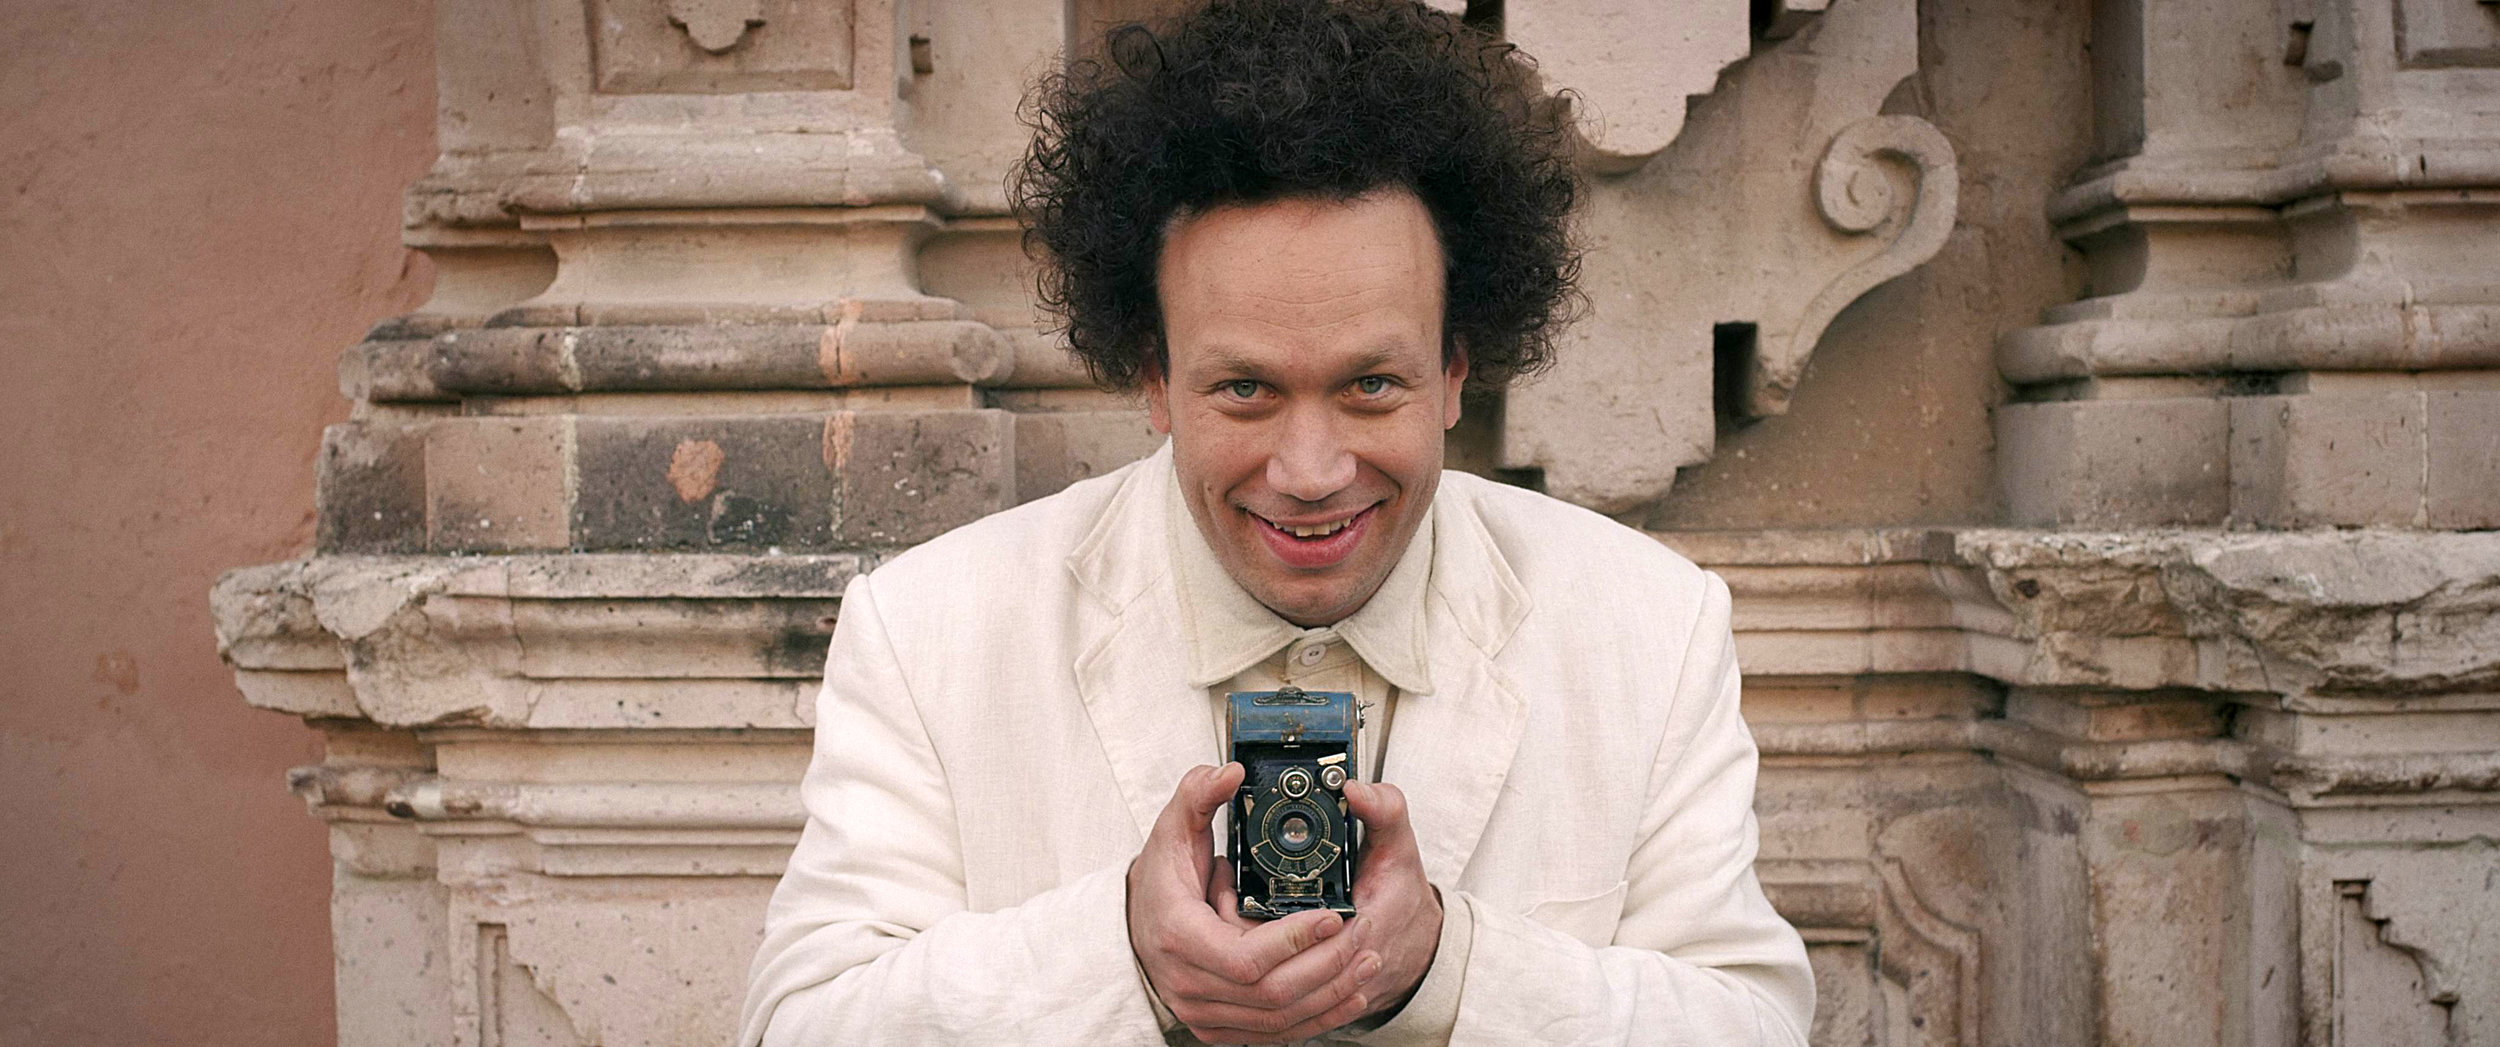 05_EISENSTEIN_In_GUANAJUATO_by_Peter_Greenaway_produced_by_Submarine_Fu_Works_and_Paloma_Negra©Submarine_2015.jpg